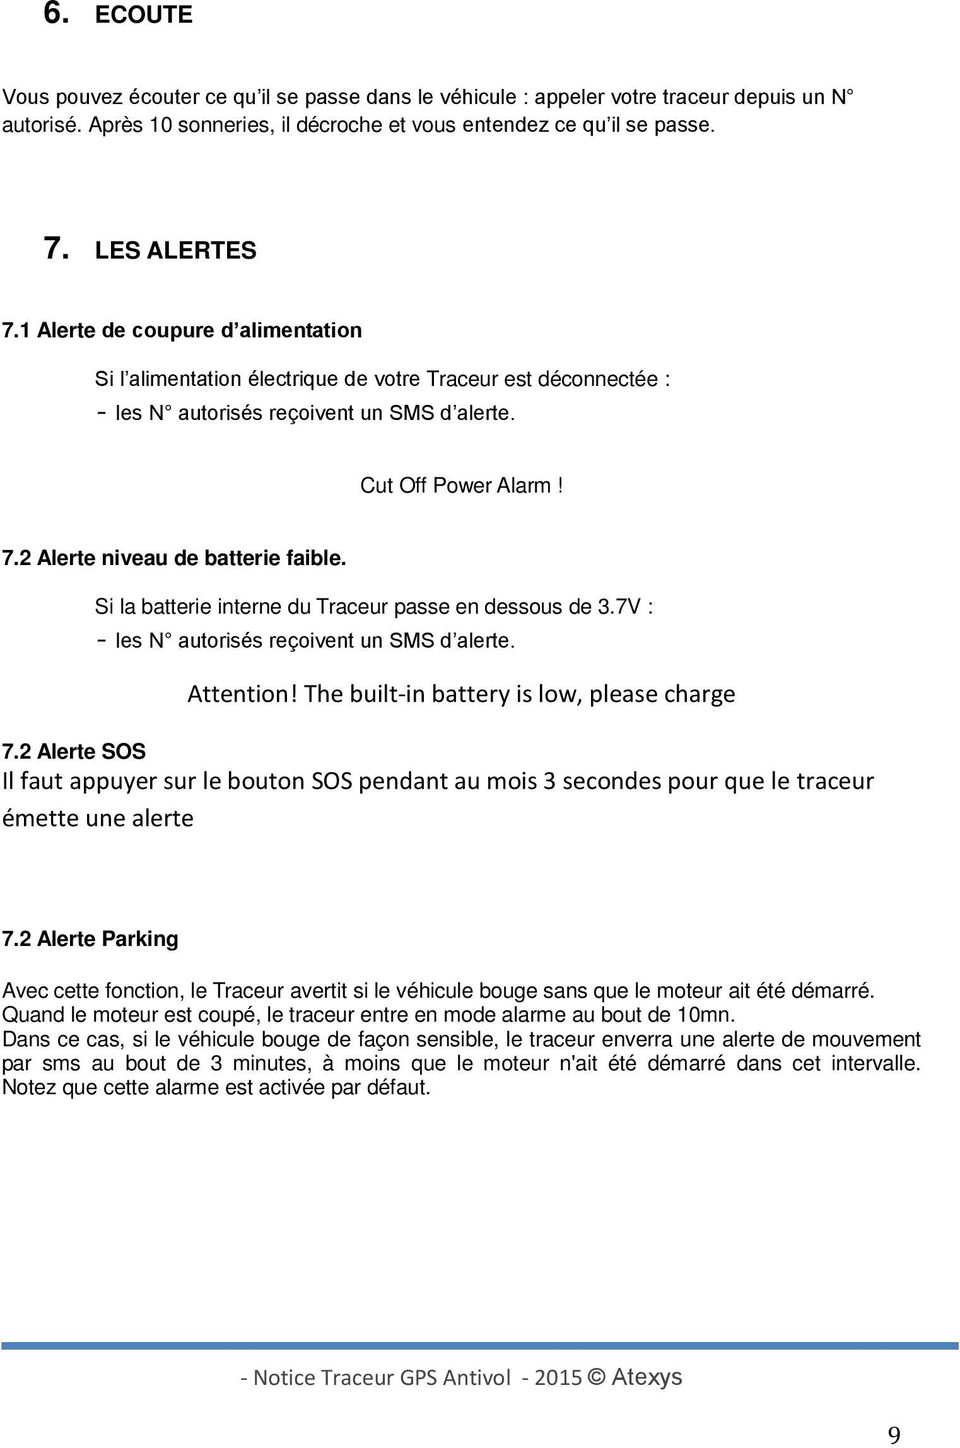 2 Alerte niveau de batterie faible. Si la batterie interne du Traceur passe en dessous de 3.7V : - les N autorisés reçoivent un SMS d alerte. Attention! The built-in battery is low, please charge 7.